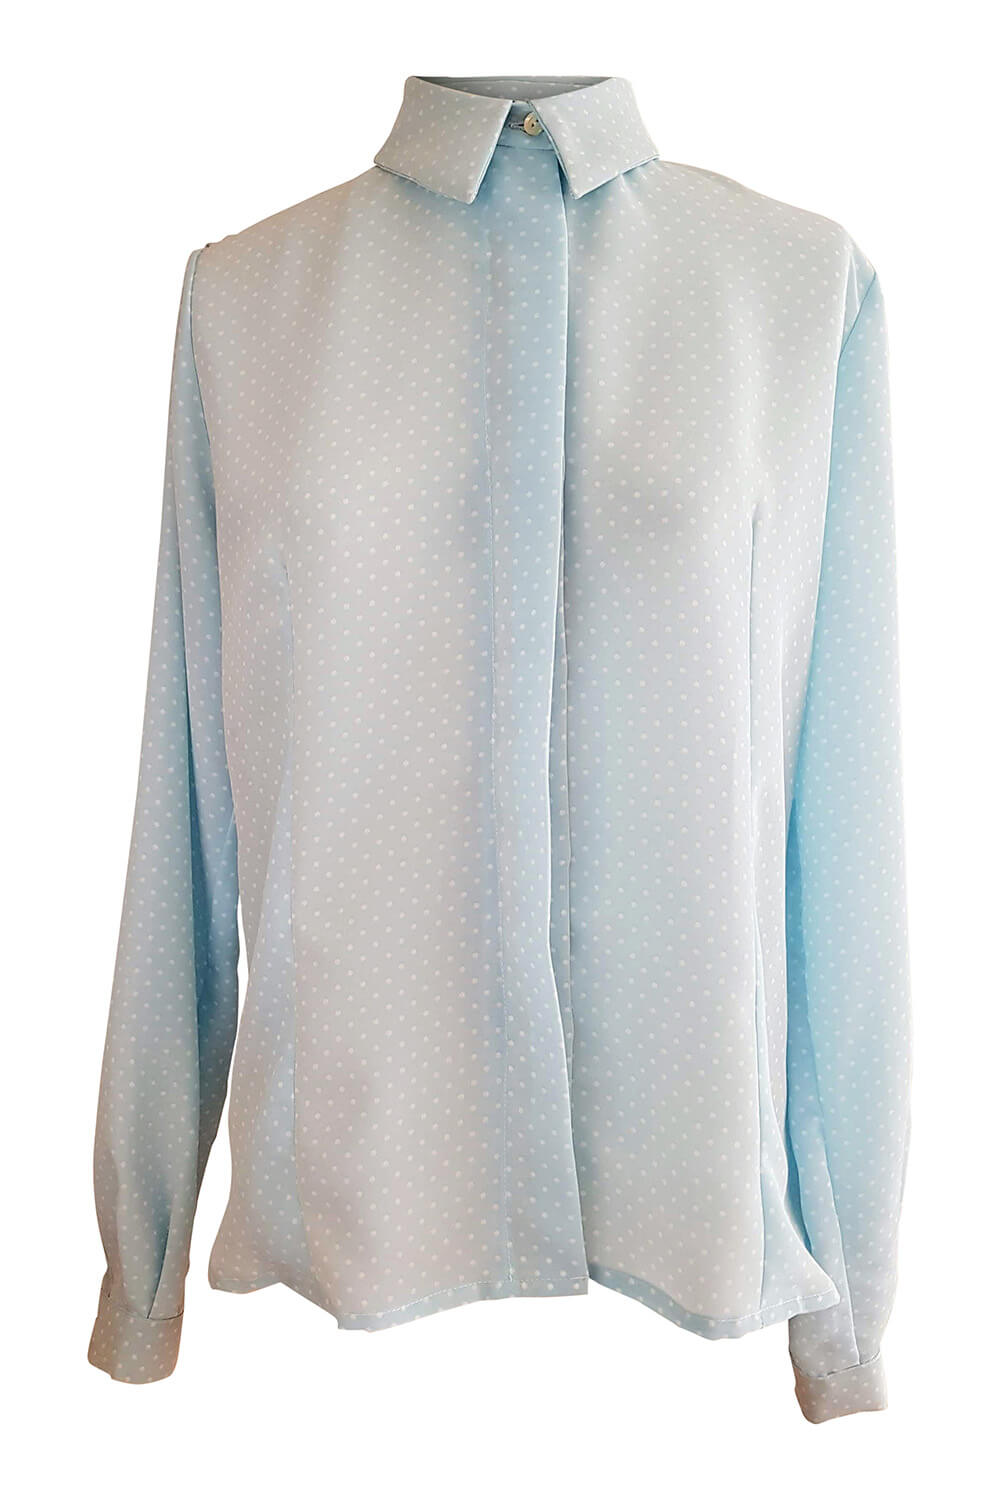 long sleeved blouse ENZA in baby blue viscose crêpe with polka dots